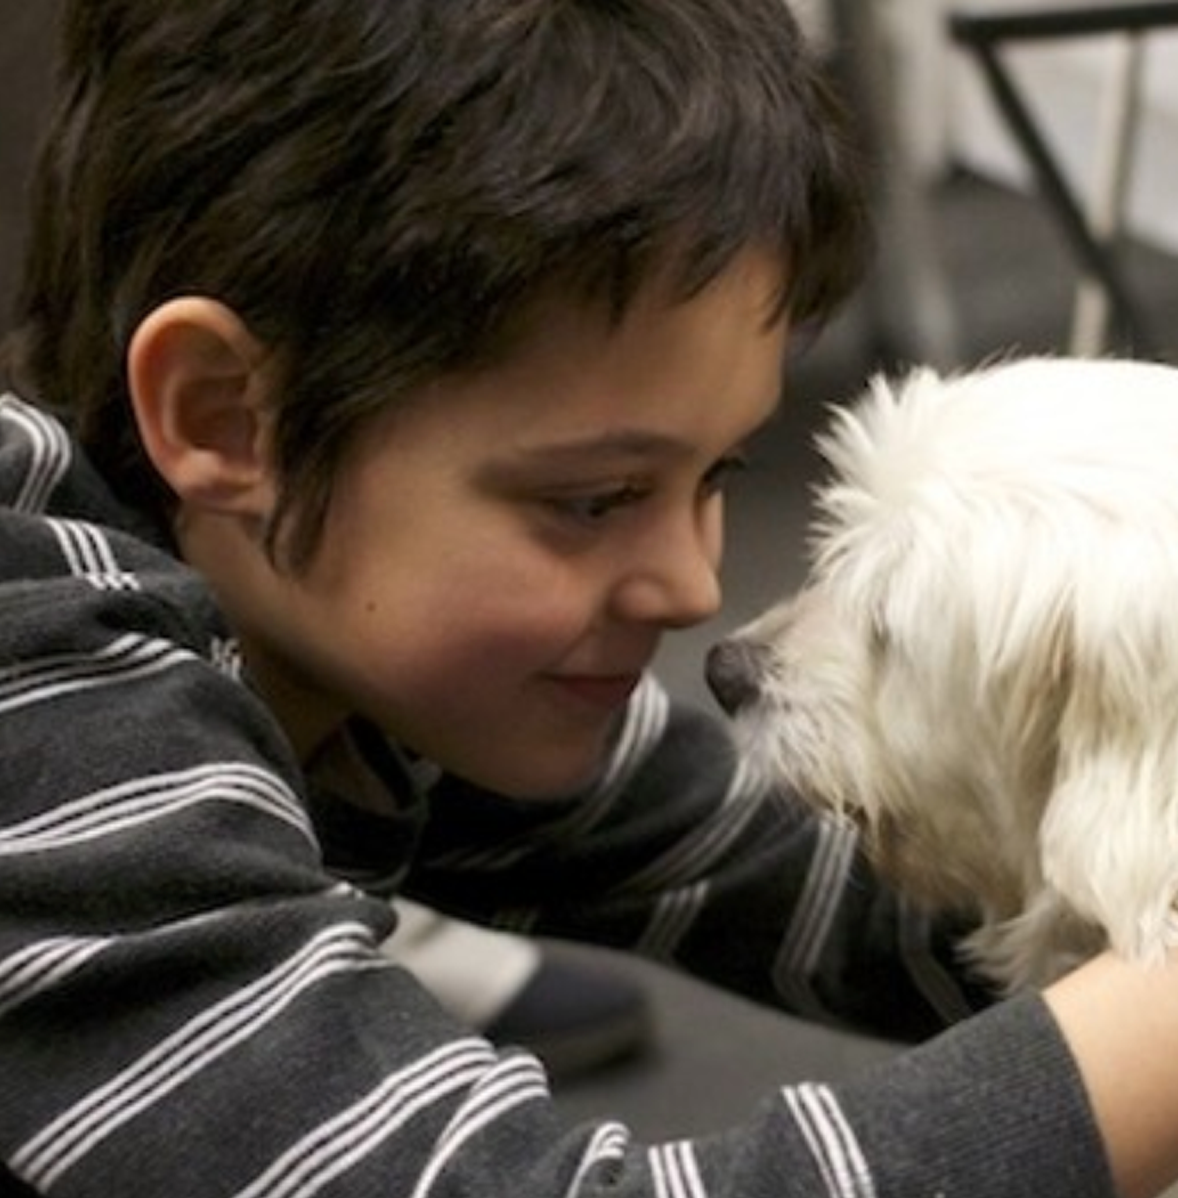 """Gideon - This is Gideon. When he was 7 he participated in our partner Teach HEART's program """"Caring Kids: Animal Ambassadors"""" in partnership with Animal Haven. As an Animal Ambassador, Gideon took part in five different programs, each three sessions long, learning about topics including companion animal protection, the importance of adopting small furry animals, birds, and reptiles, building reverence for farm animals, protecting wildlife, and humane training techniques, along with promoting dog and cat adoptions. Gideon explained, """"I read this book called 'Harry the Homeless Puppy' and people were volunteering at this animal shelter. So after I read the whole book, my mom [and I] went online and we tried to find local animal shelters that I could volunteer at. All the animal shelters didn't really have something for kids my age. So, we found Animal Haven. It was the best."""" Gideon and his mom would travel from Staten Island to NYC for him to participate in this unique program.Gideon is now 13 years old. His grandmother just adopted two puppy mill rescues. He also encouraged his dad to return to school for his masters at NYU for animal studies! 👏🏻"""